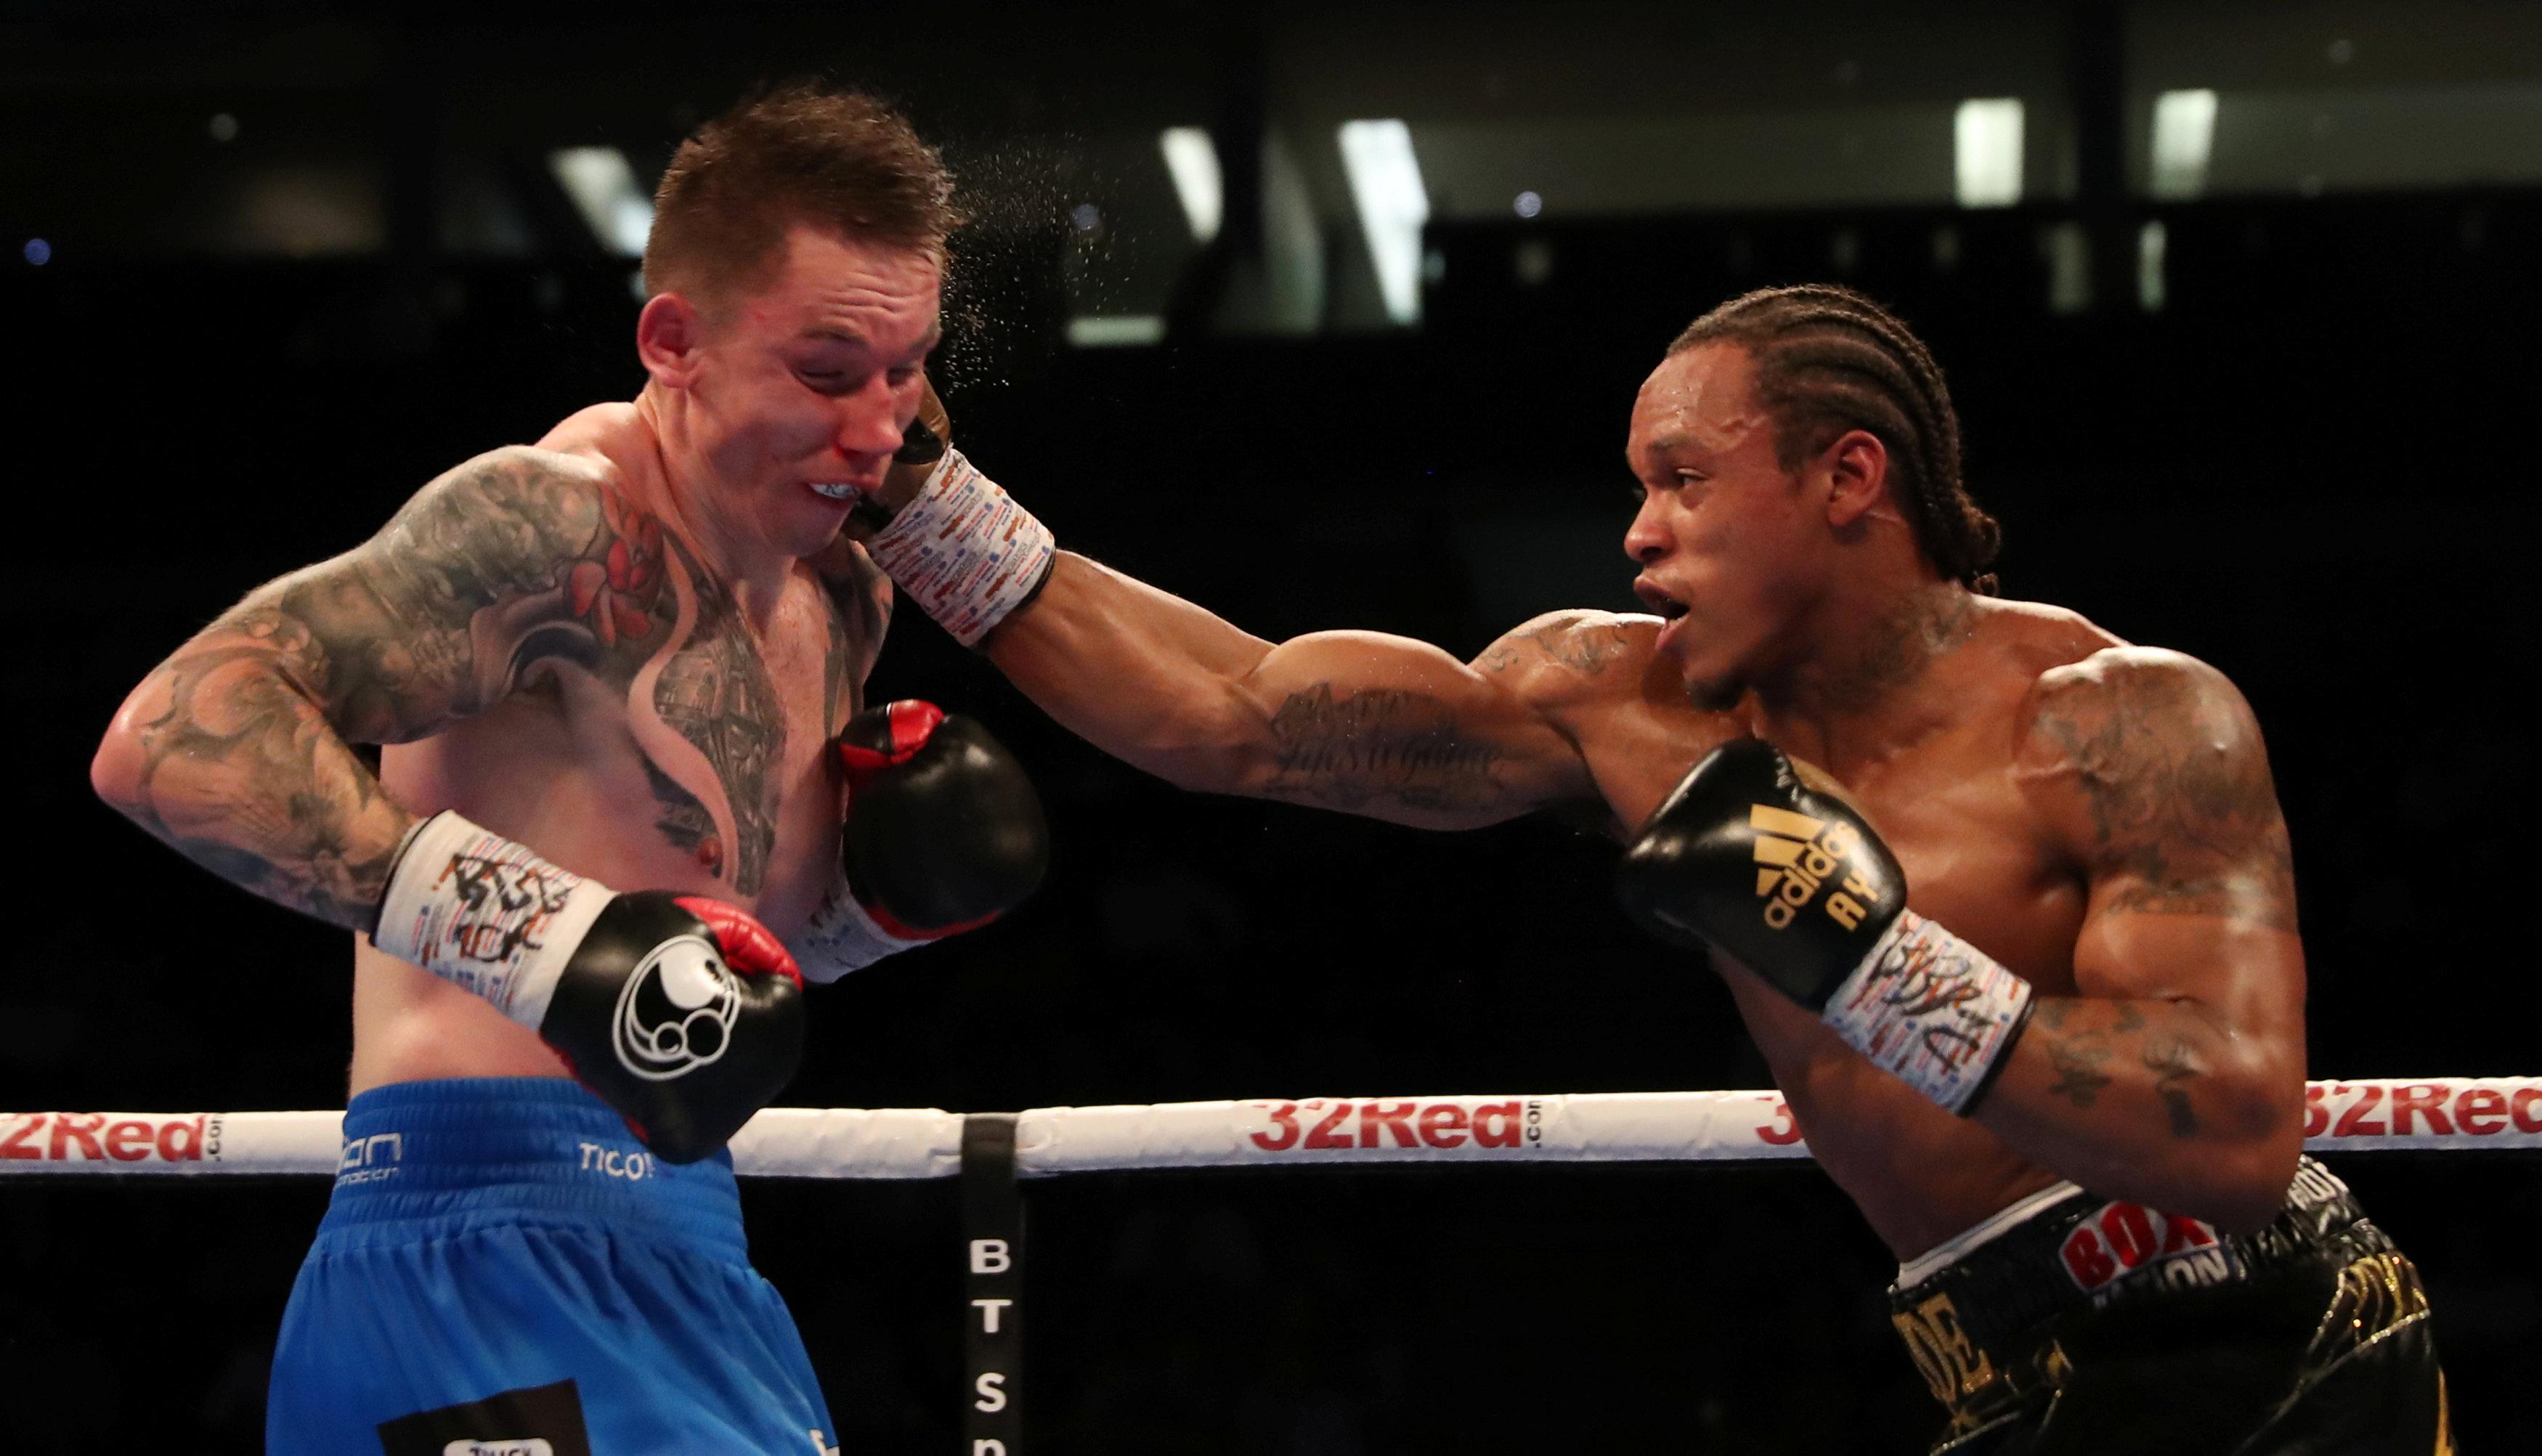 Anthony Yarde is the first boxer to stop Dariusz Sek in the ring